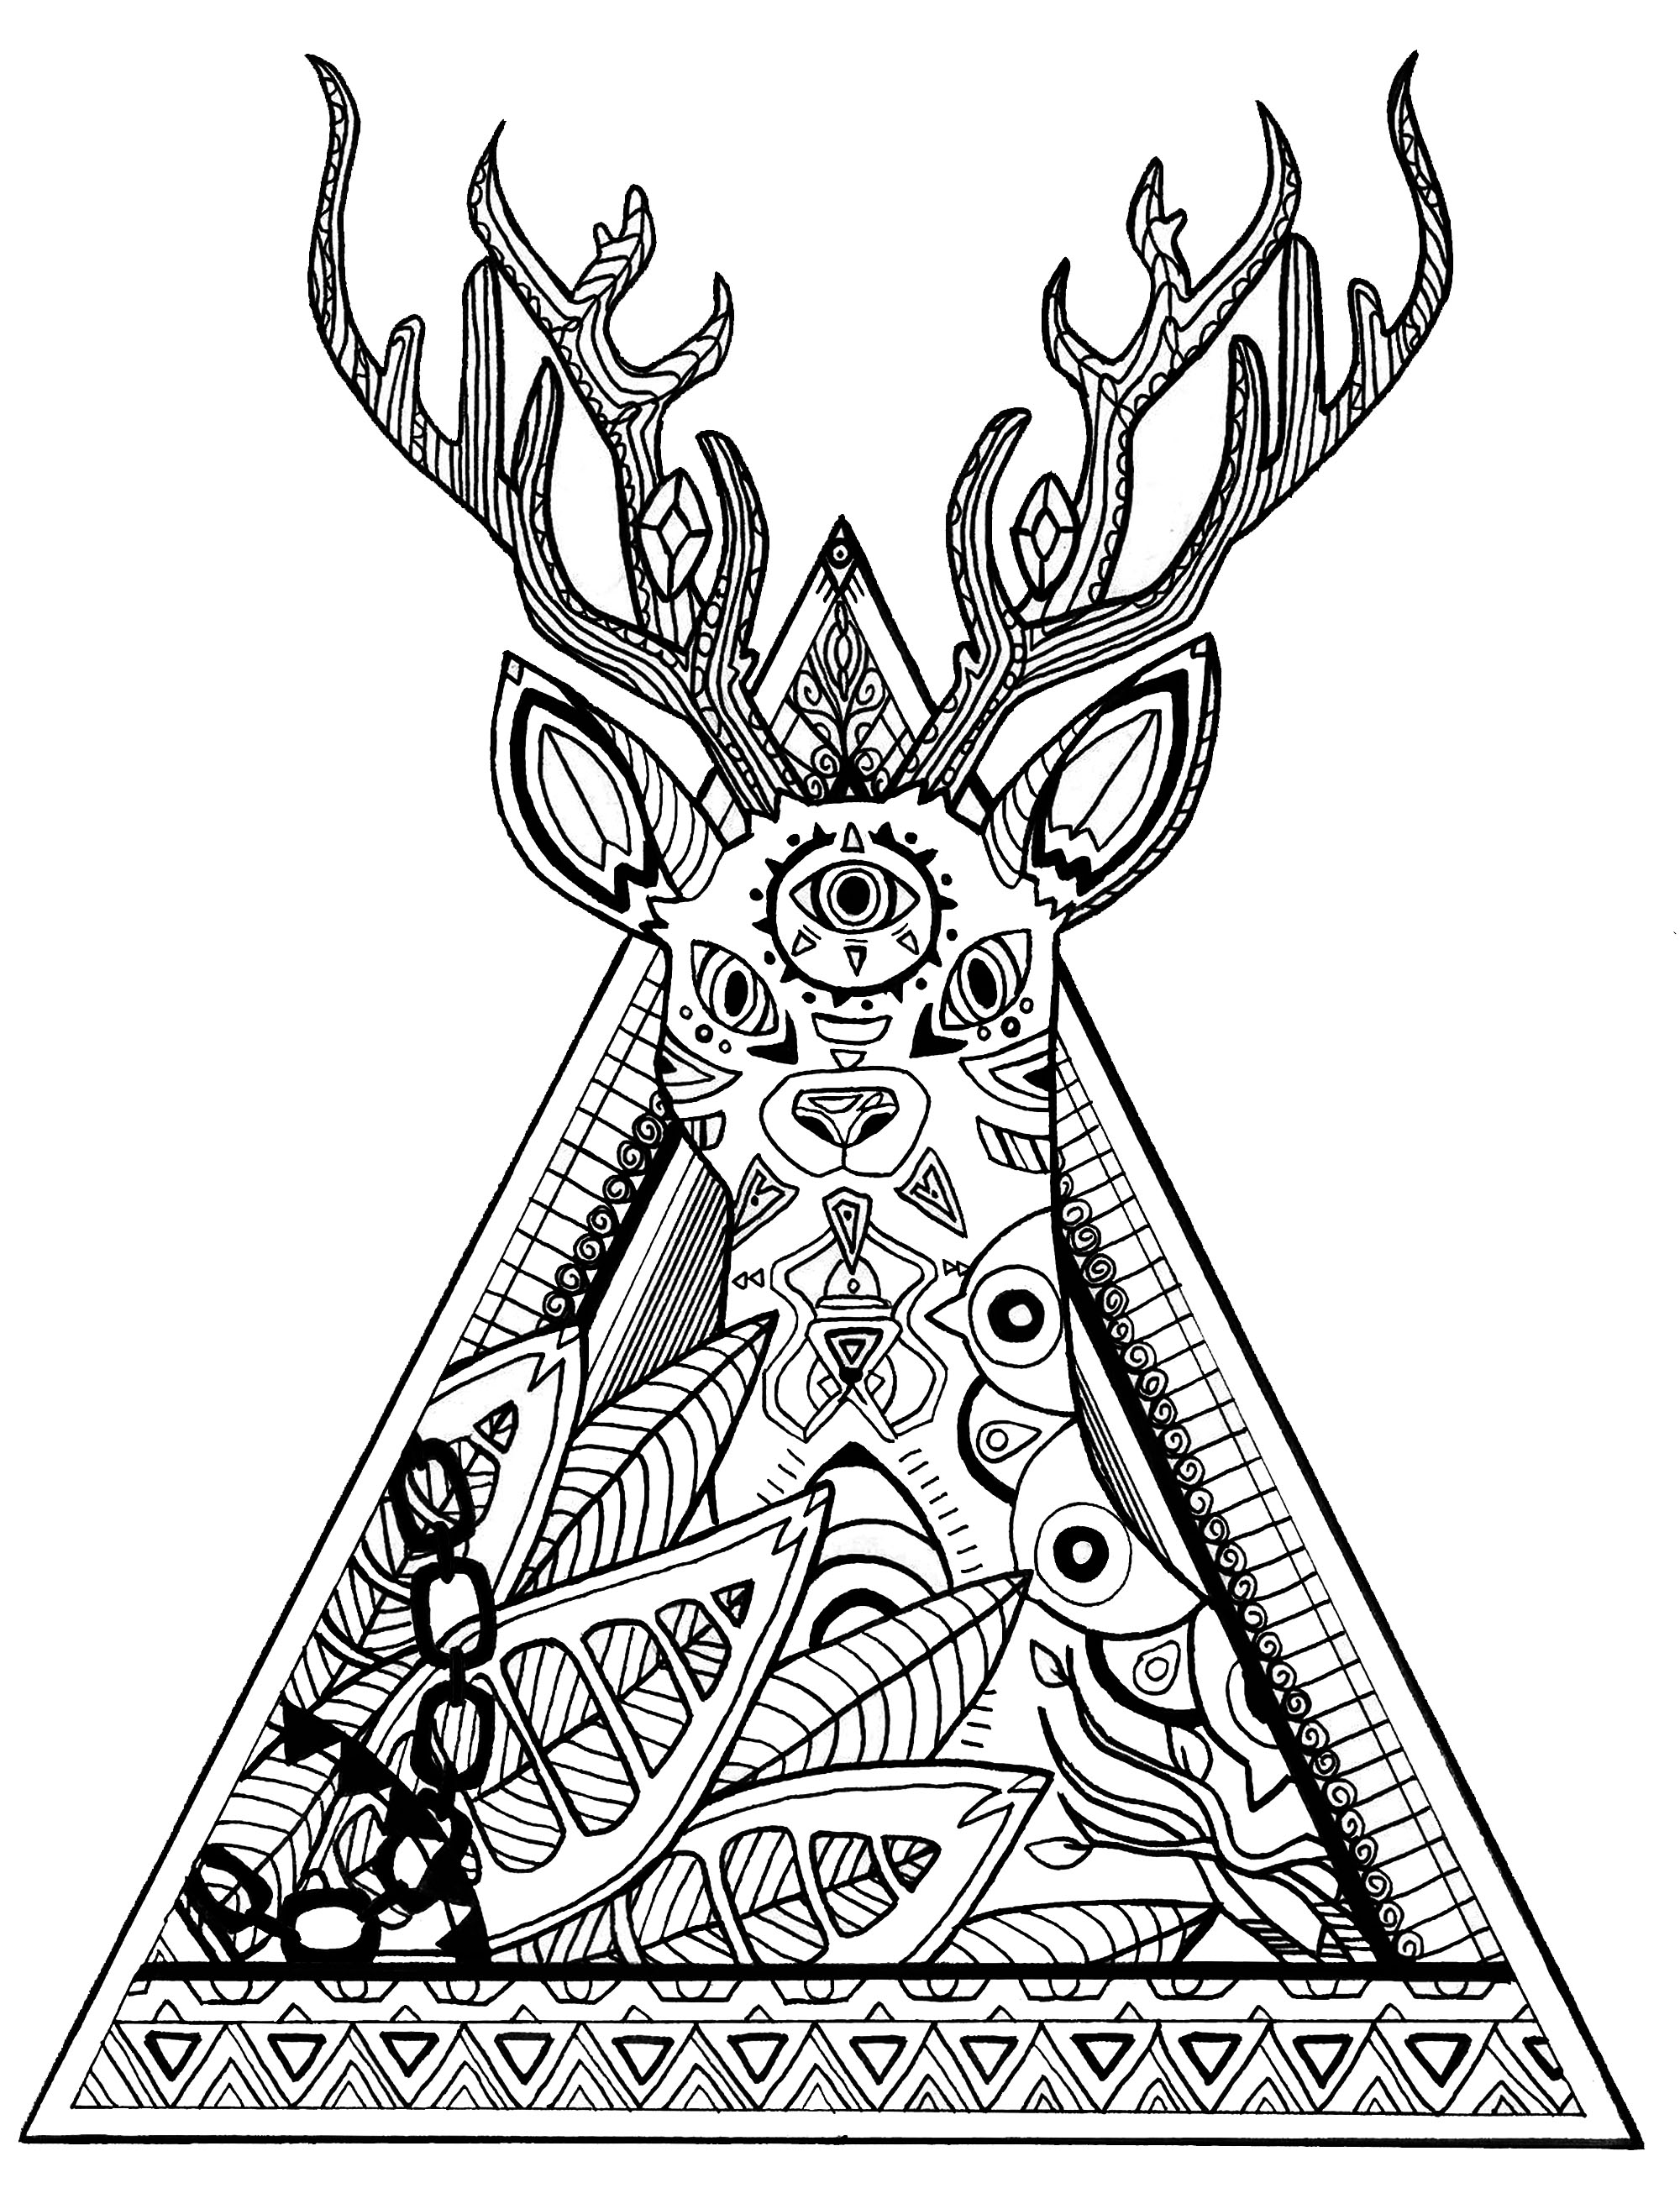 Deer In A Triangle Deers Coloring Pages For Adults Justcolor